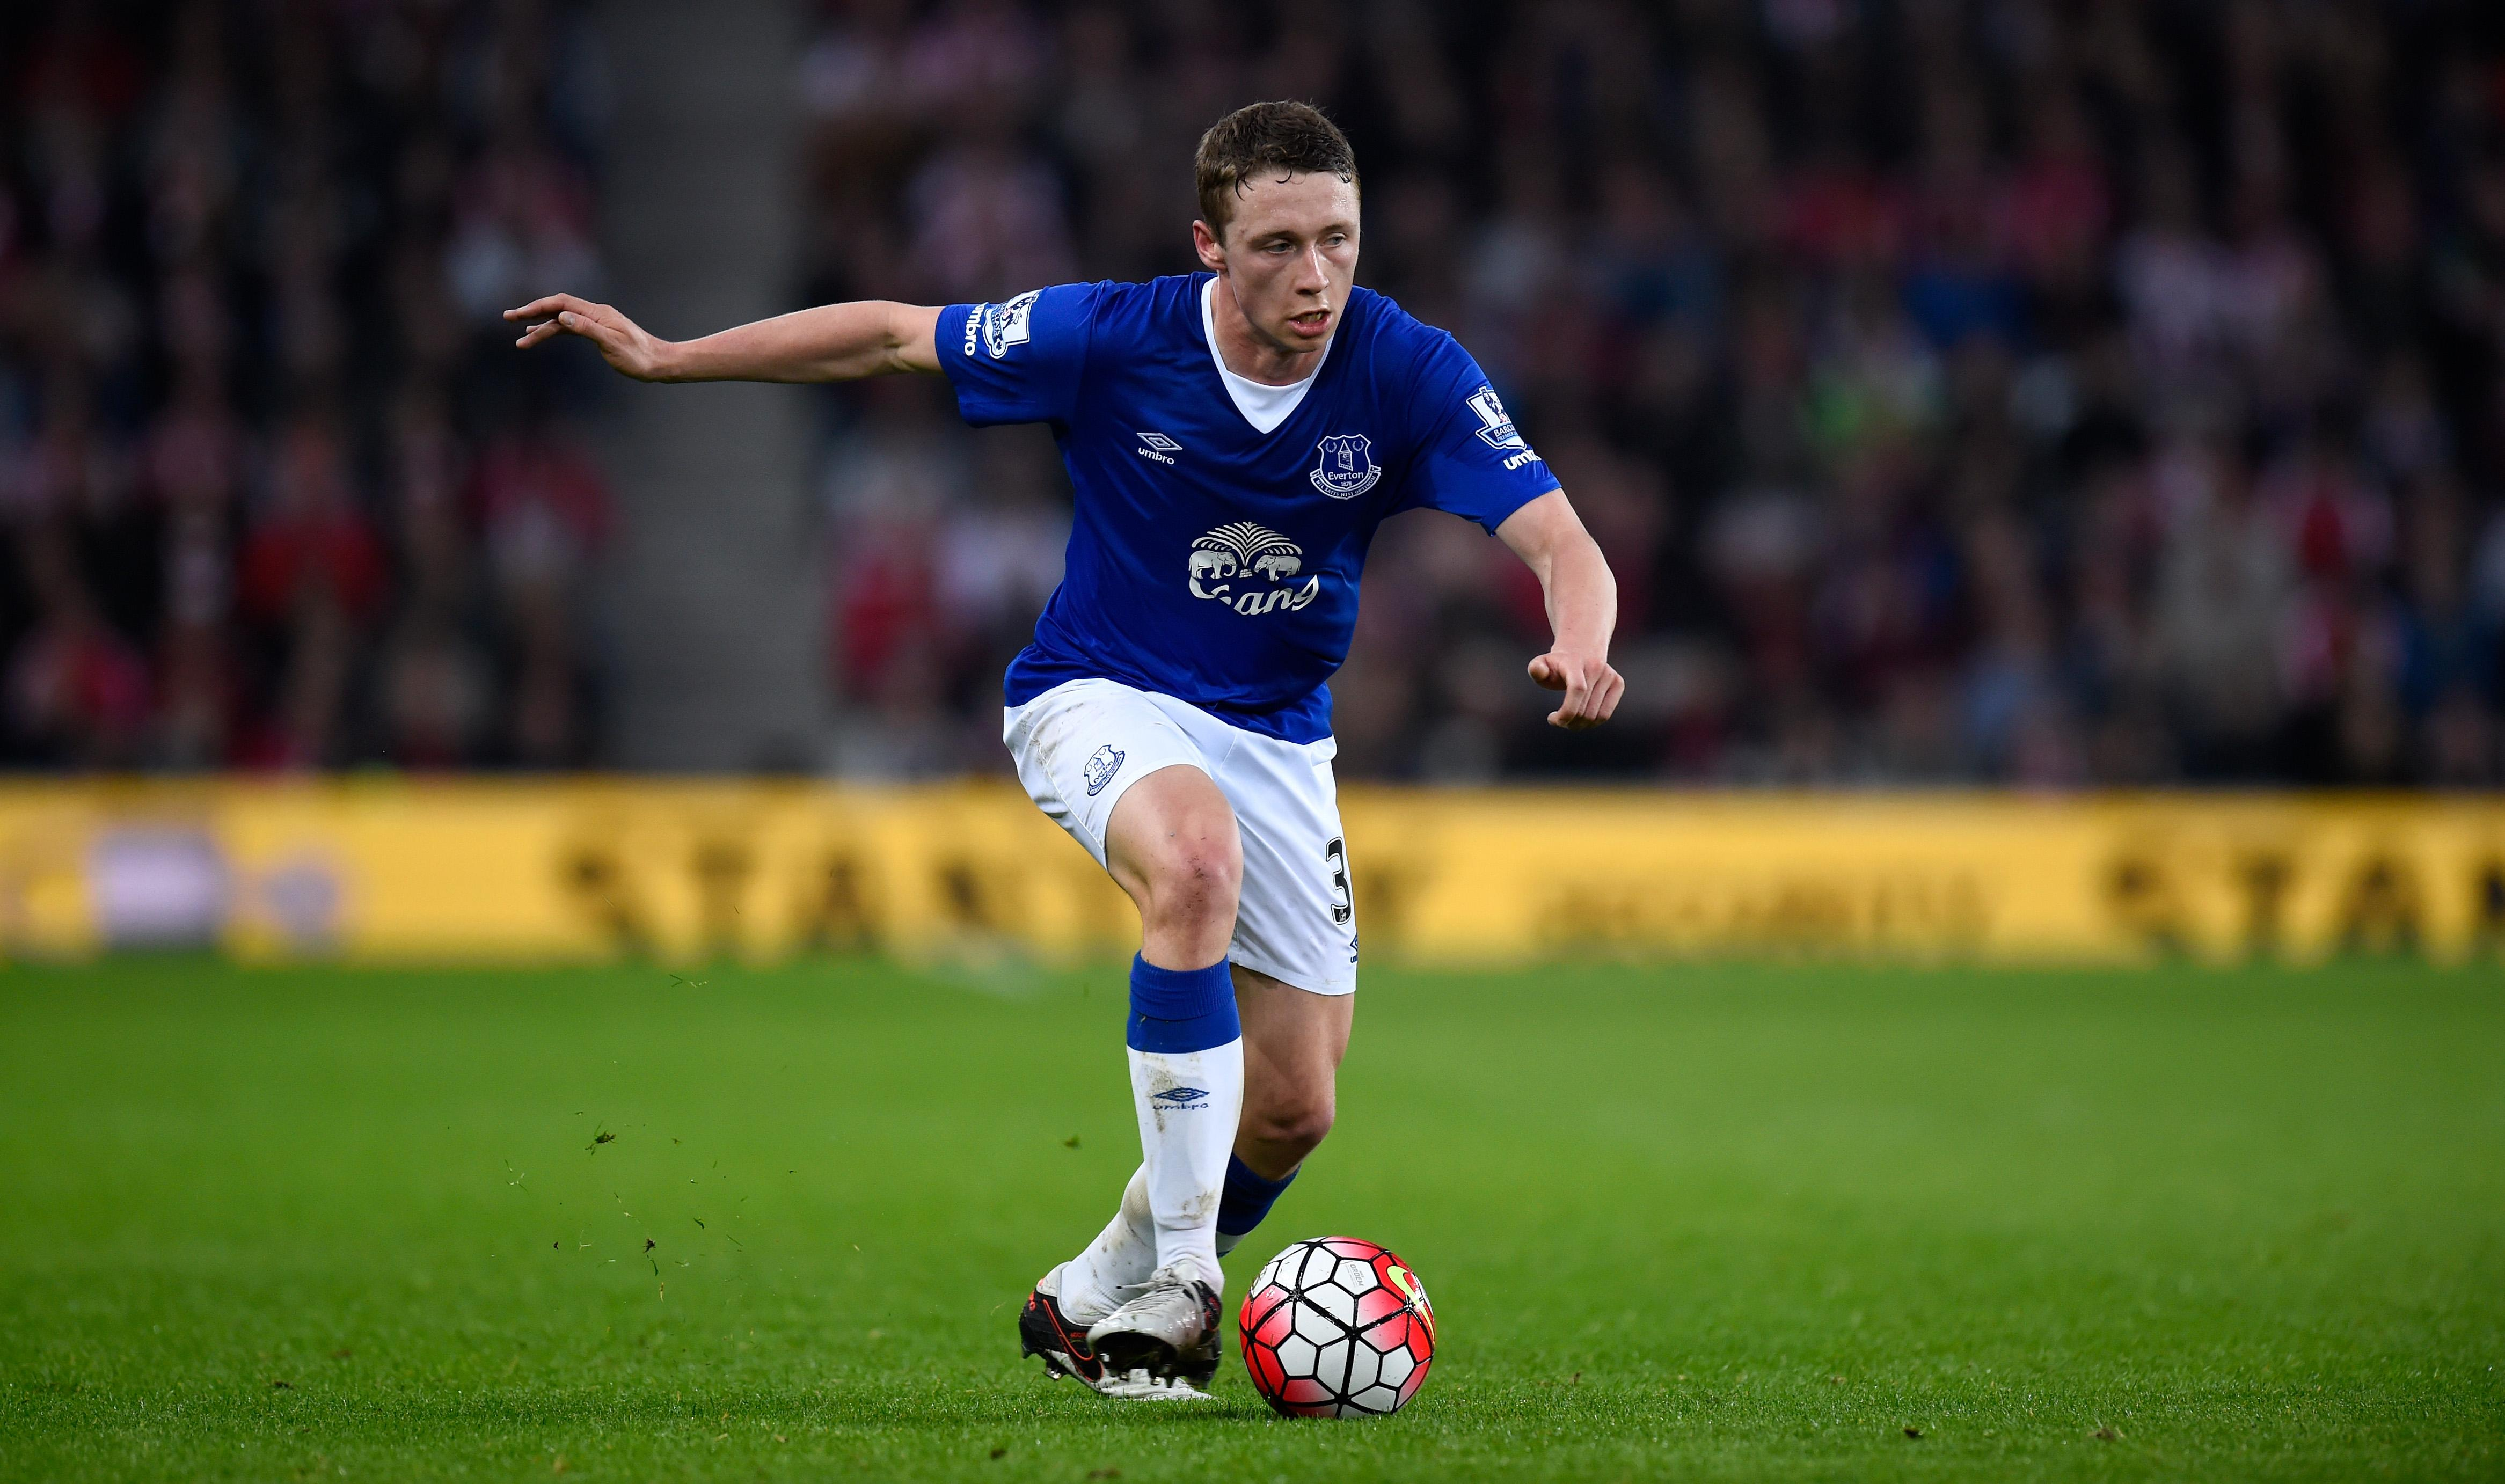 Everton defender Matthew Pennington in action. (Getty Images)